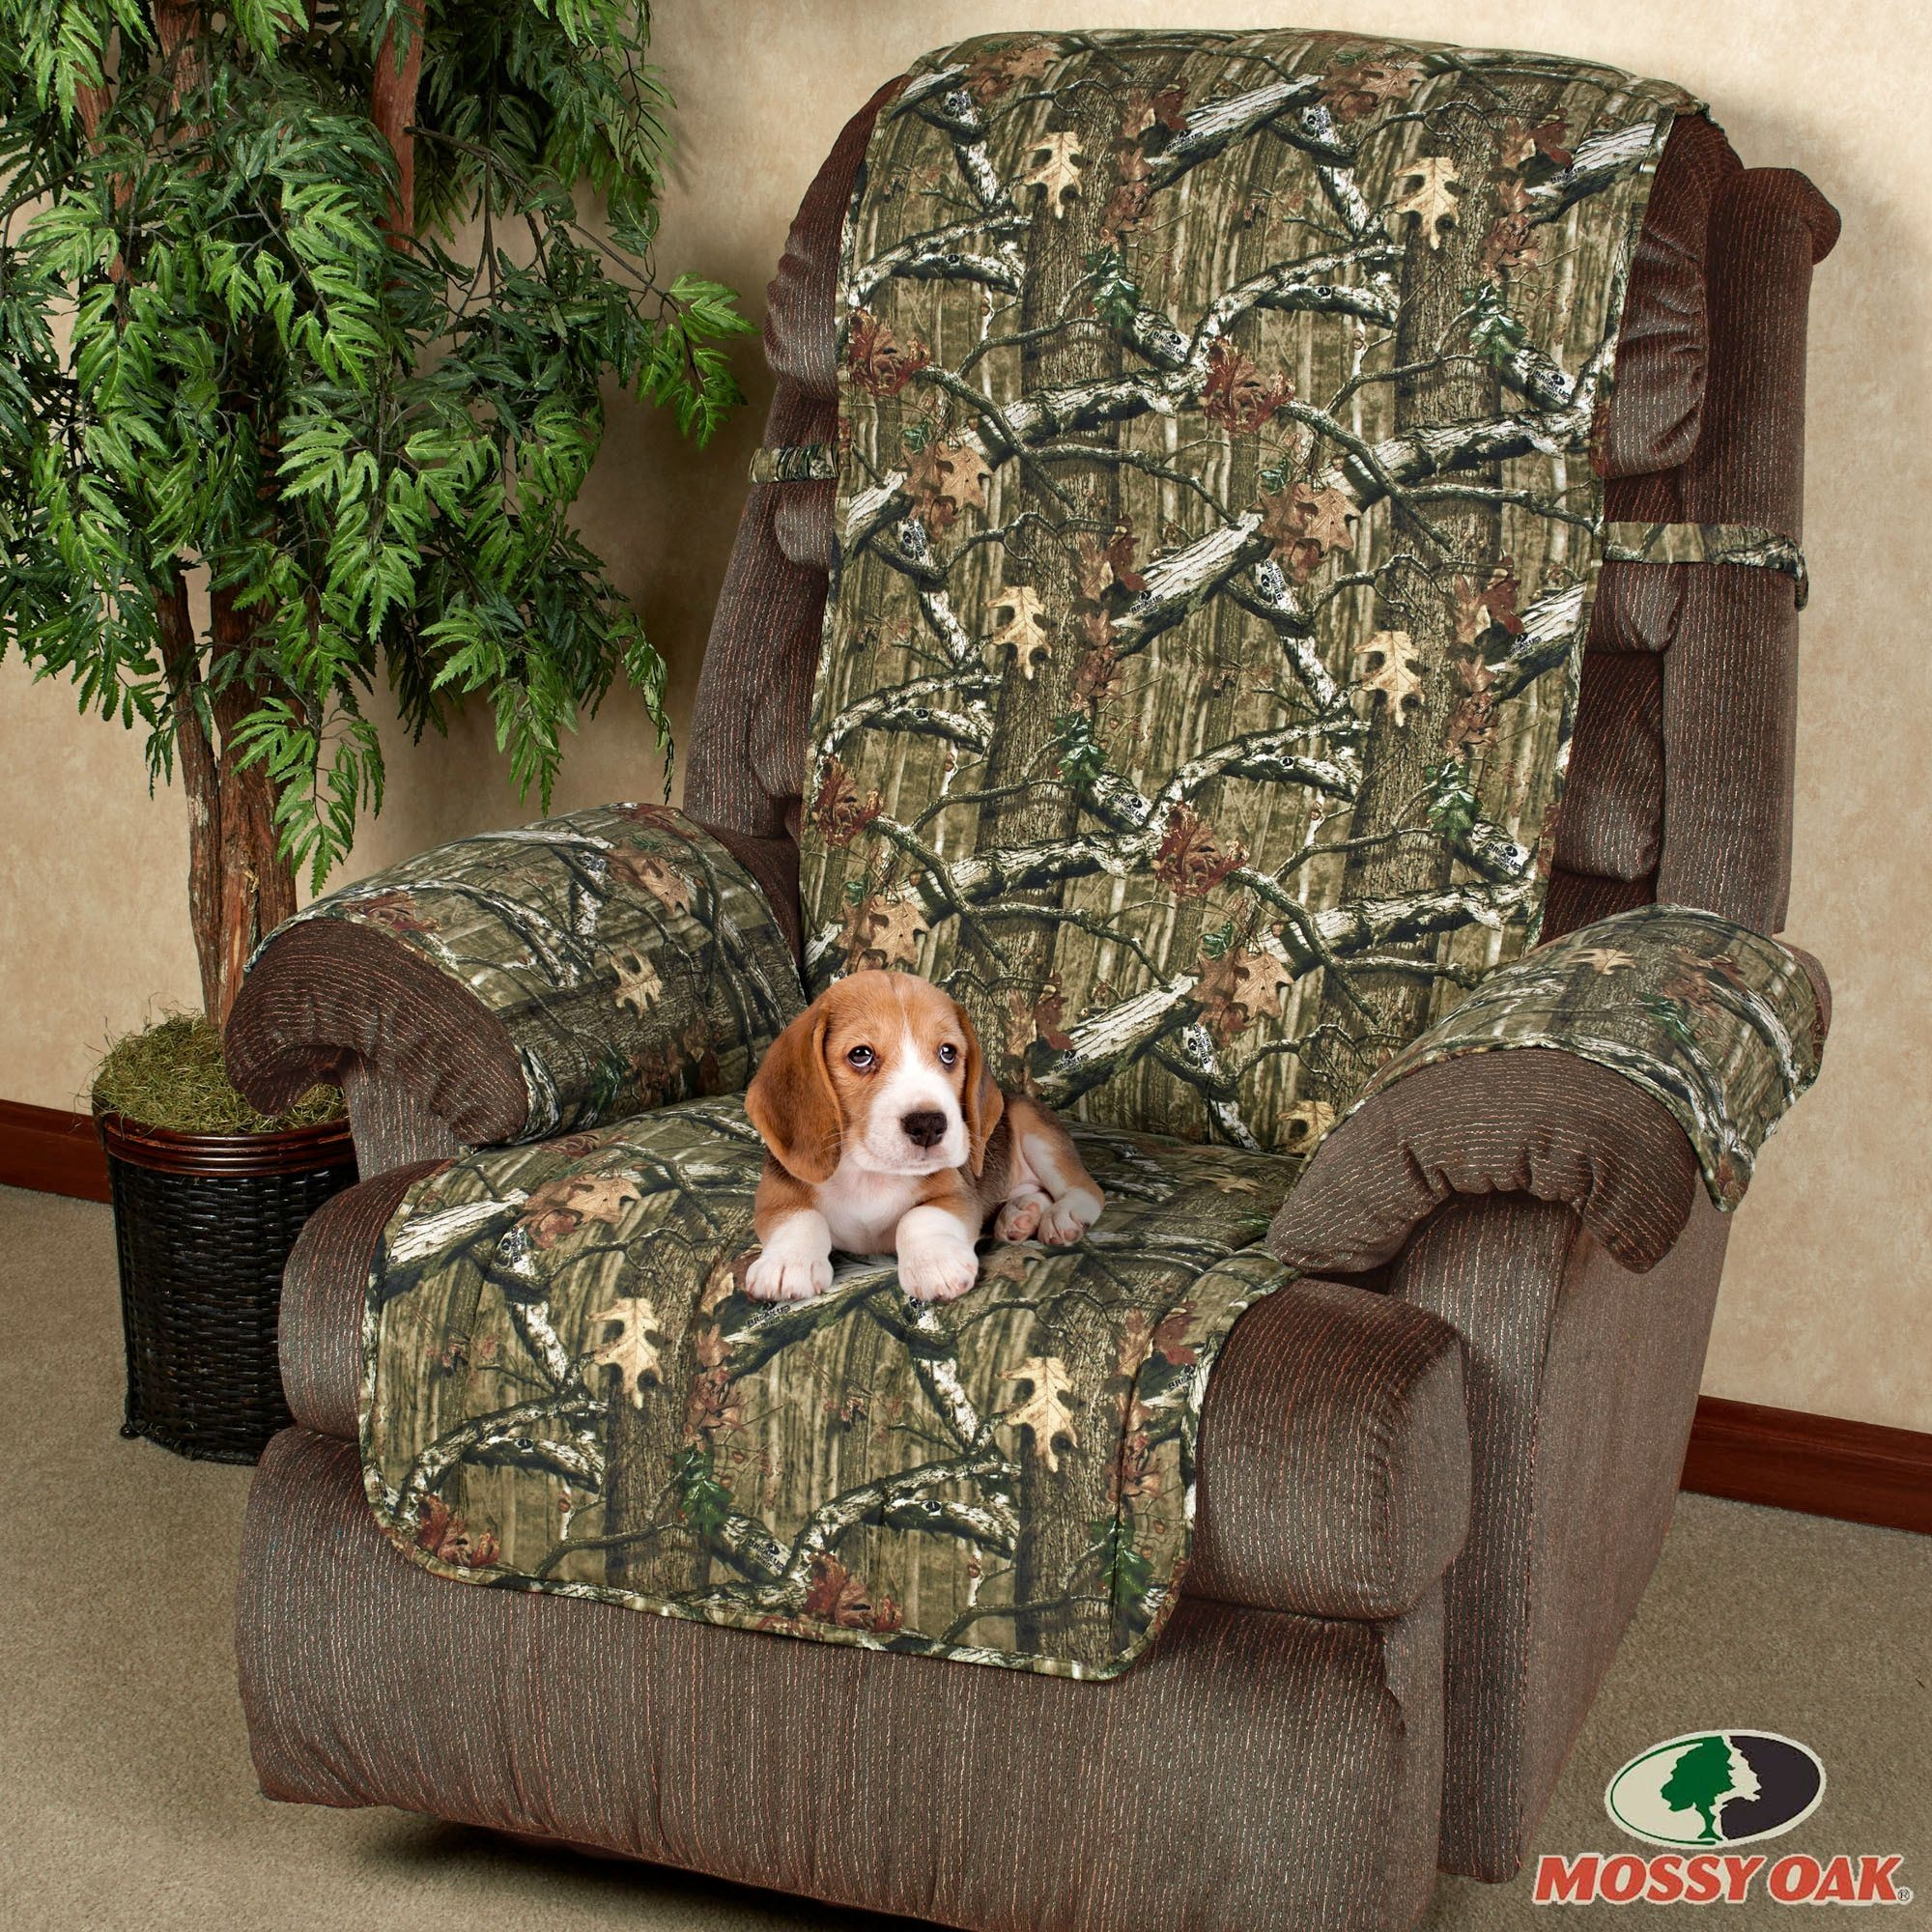 covers shop furniture pictures camouflage hunting w of coverscamo camo amazon loveseat living com impressive mossy recliner oak slipcovers reclining size pet motion cover set sofa inspirations full